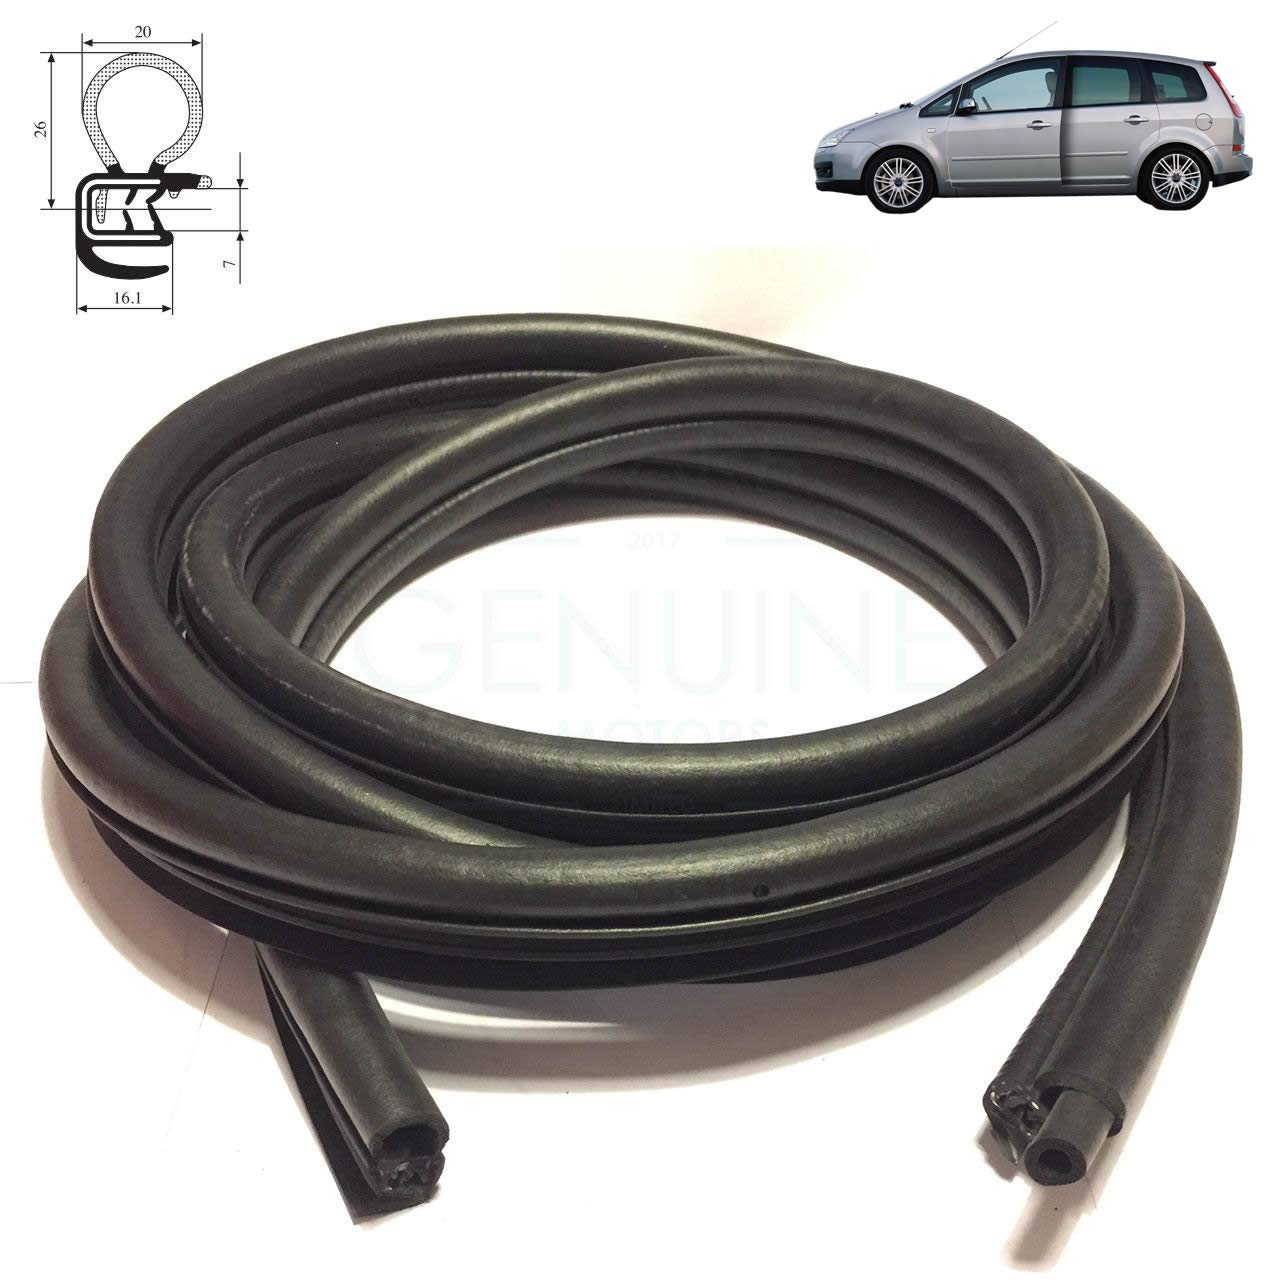 FRONT DOOR RIGHT or LEFT SIDE WEATHERSTRIP RUBBER SEAL 4M51-A20530-BB5Y